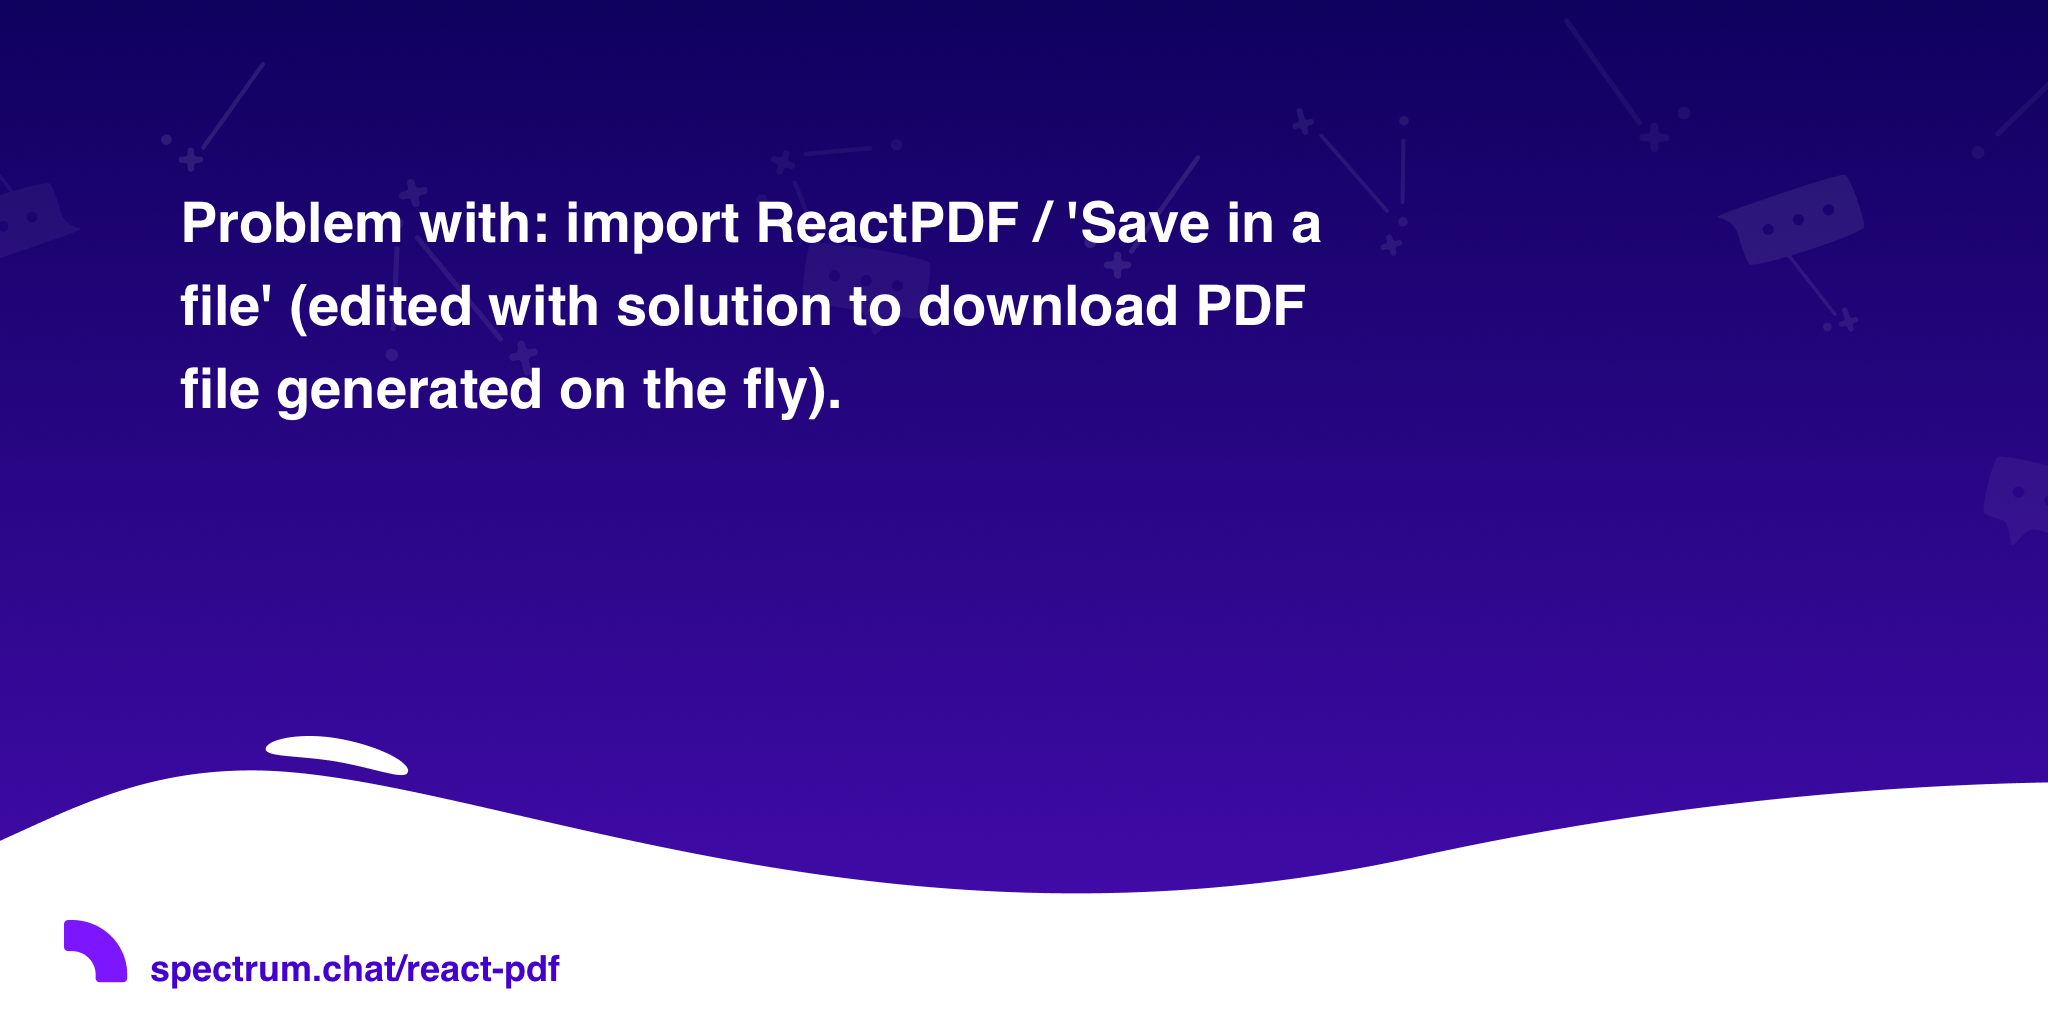 Problem with: import ReactPDF / 'Save in a file' (edited